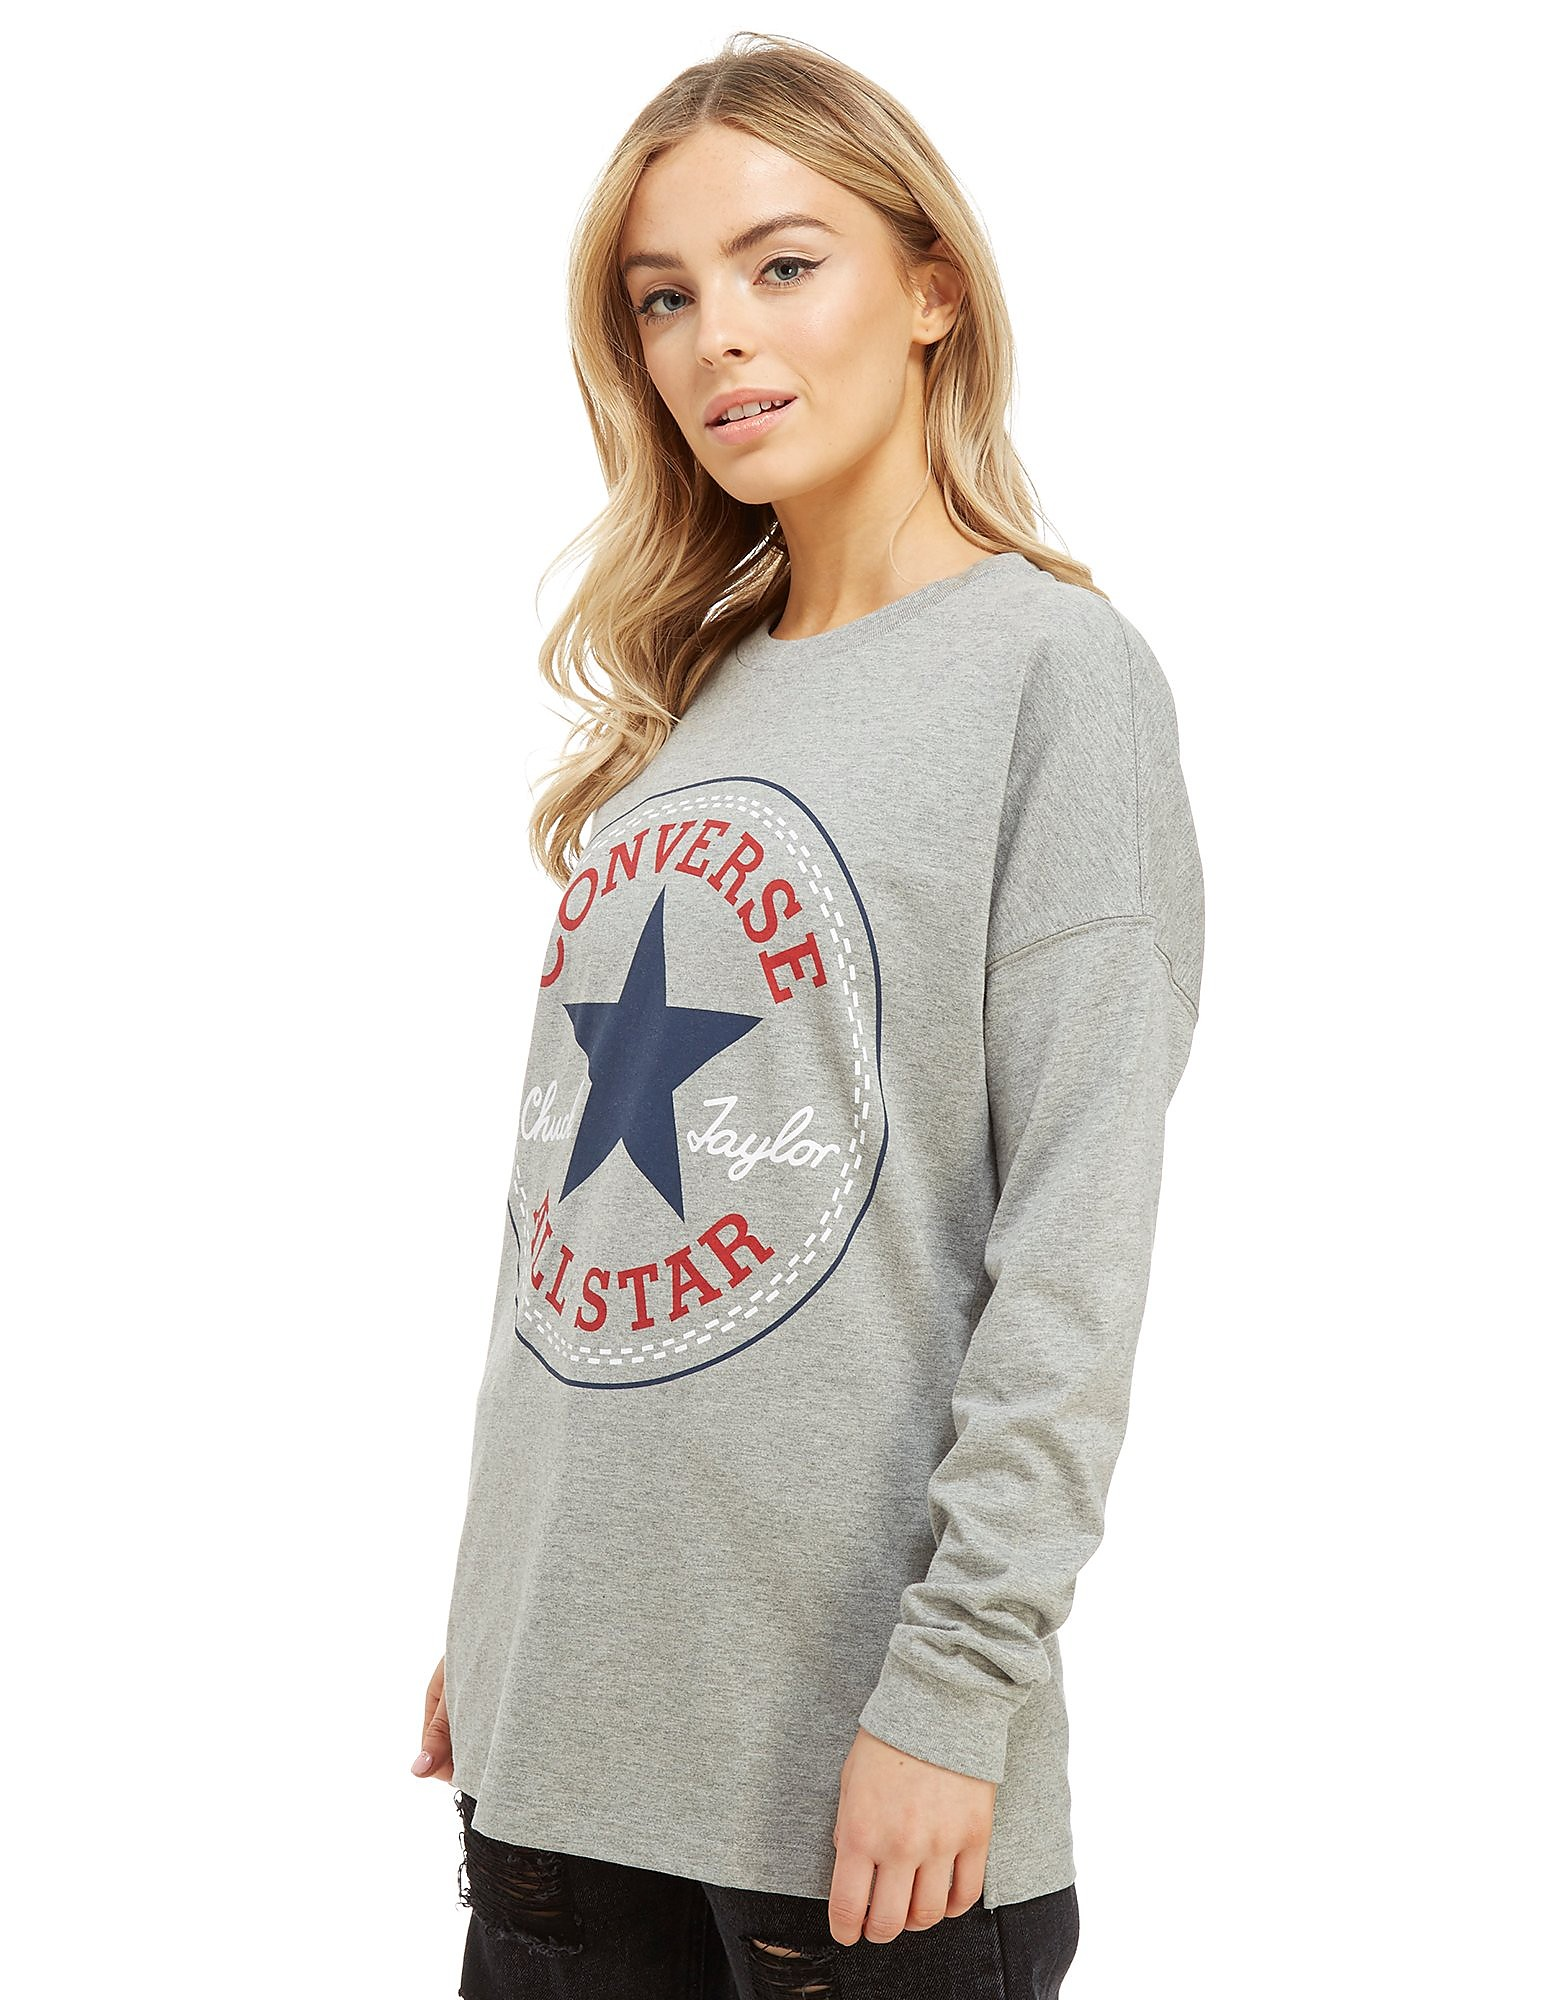 Converse Chuck Long Sleeve T-Shirt Women's